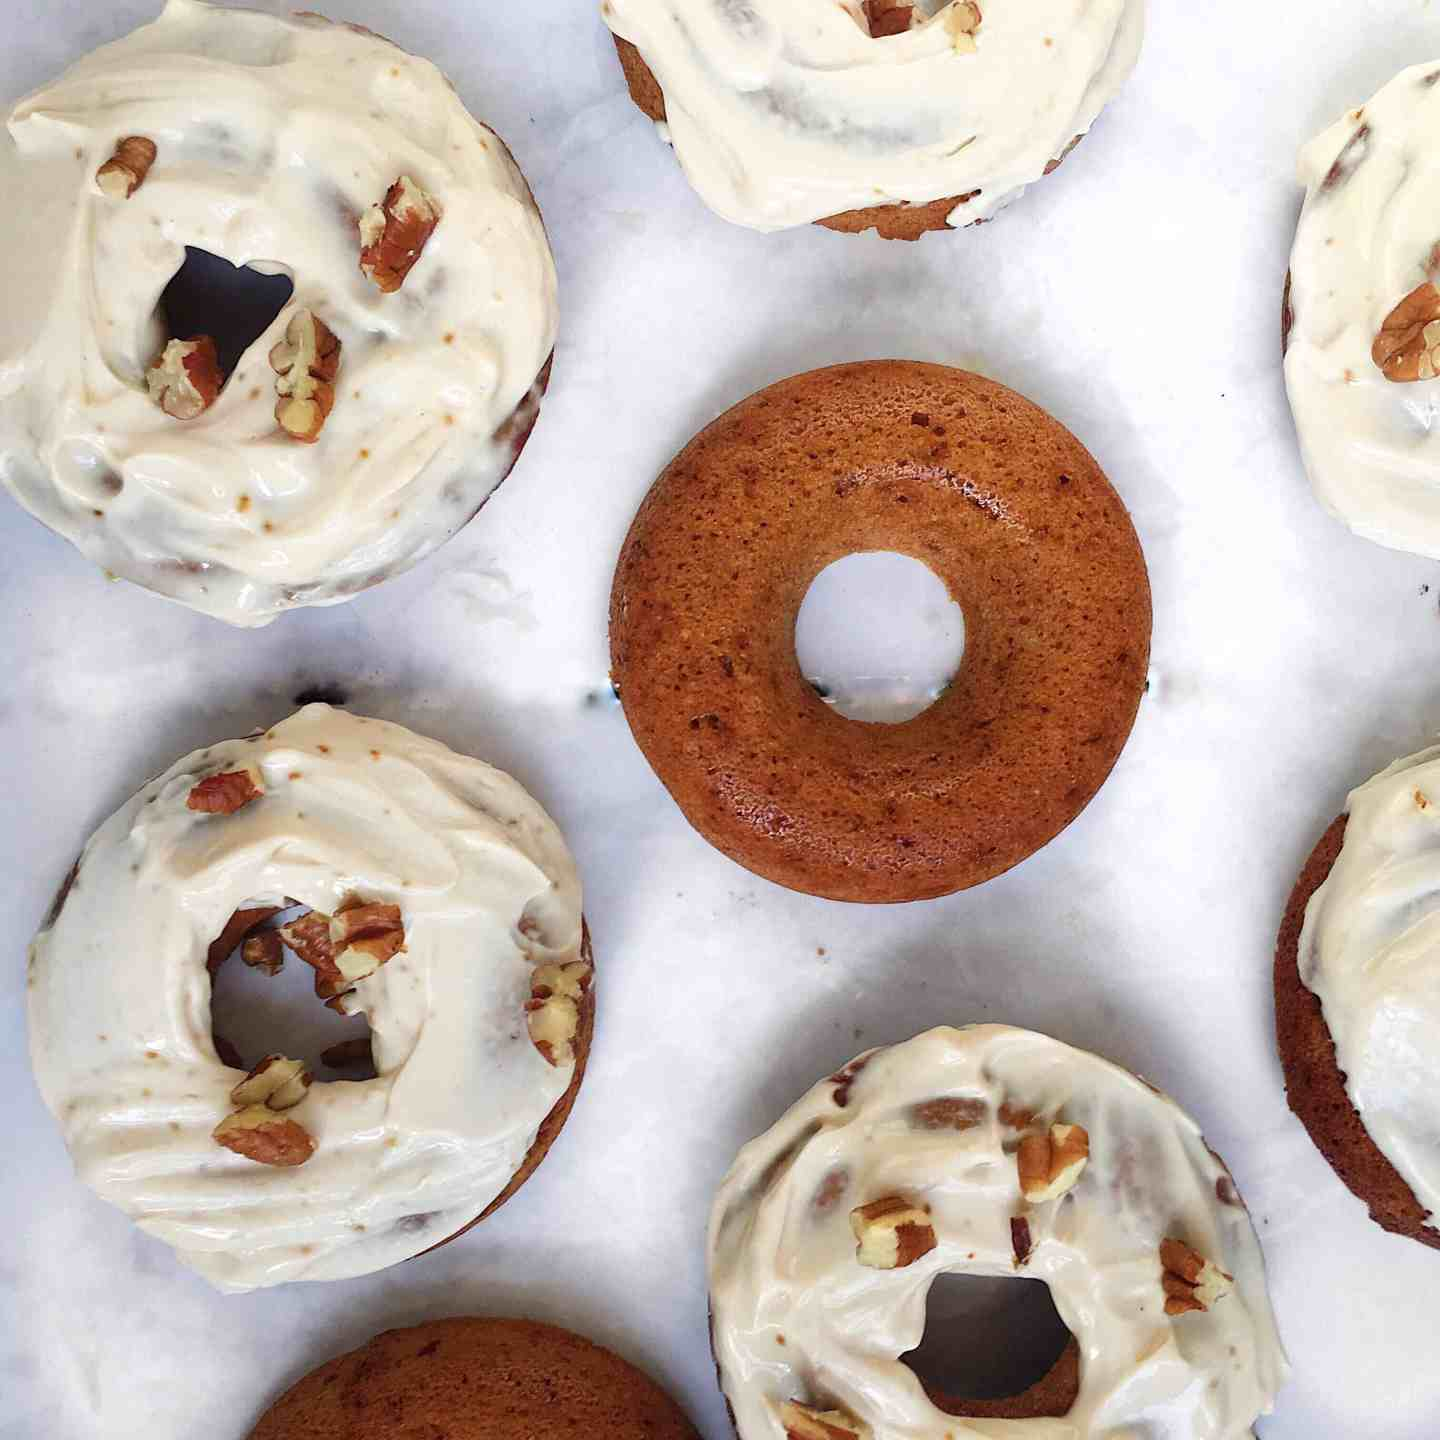 Healthy Carrot Cake Baked Doughnuts recipe